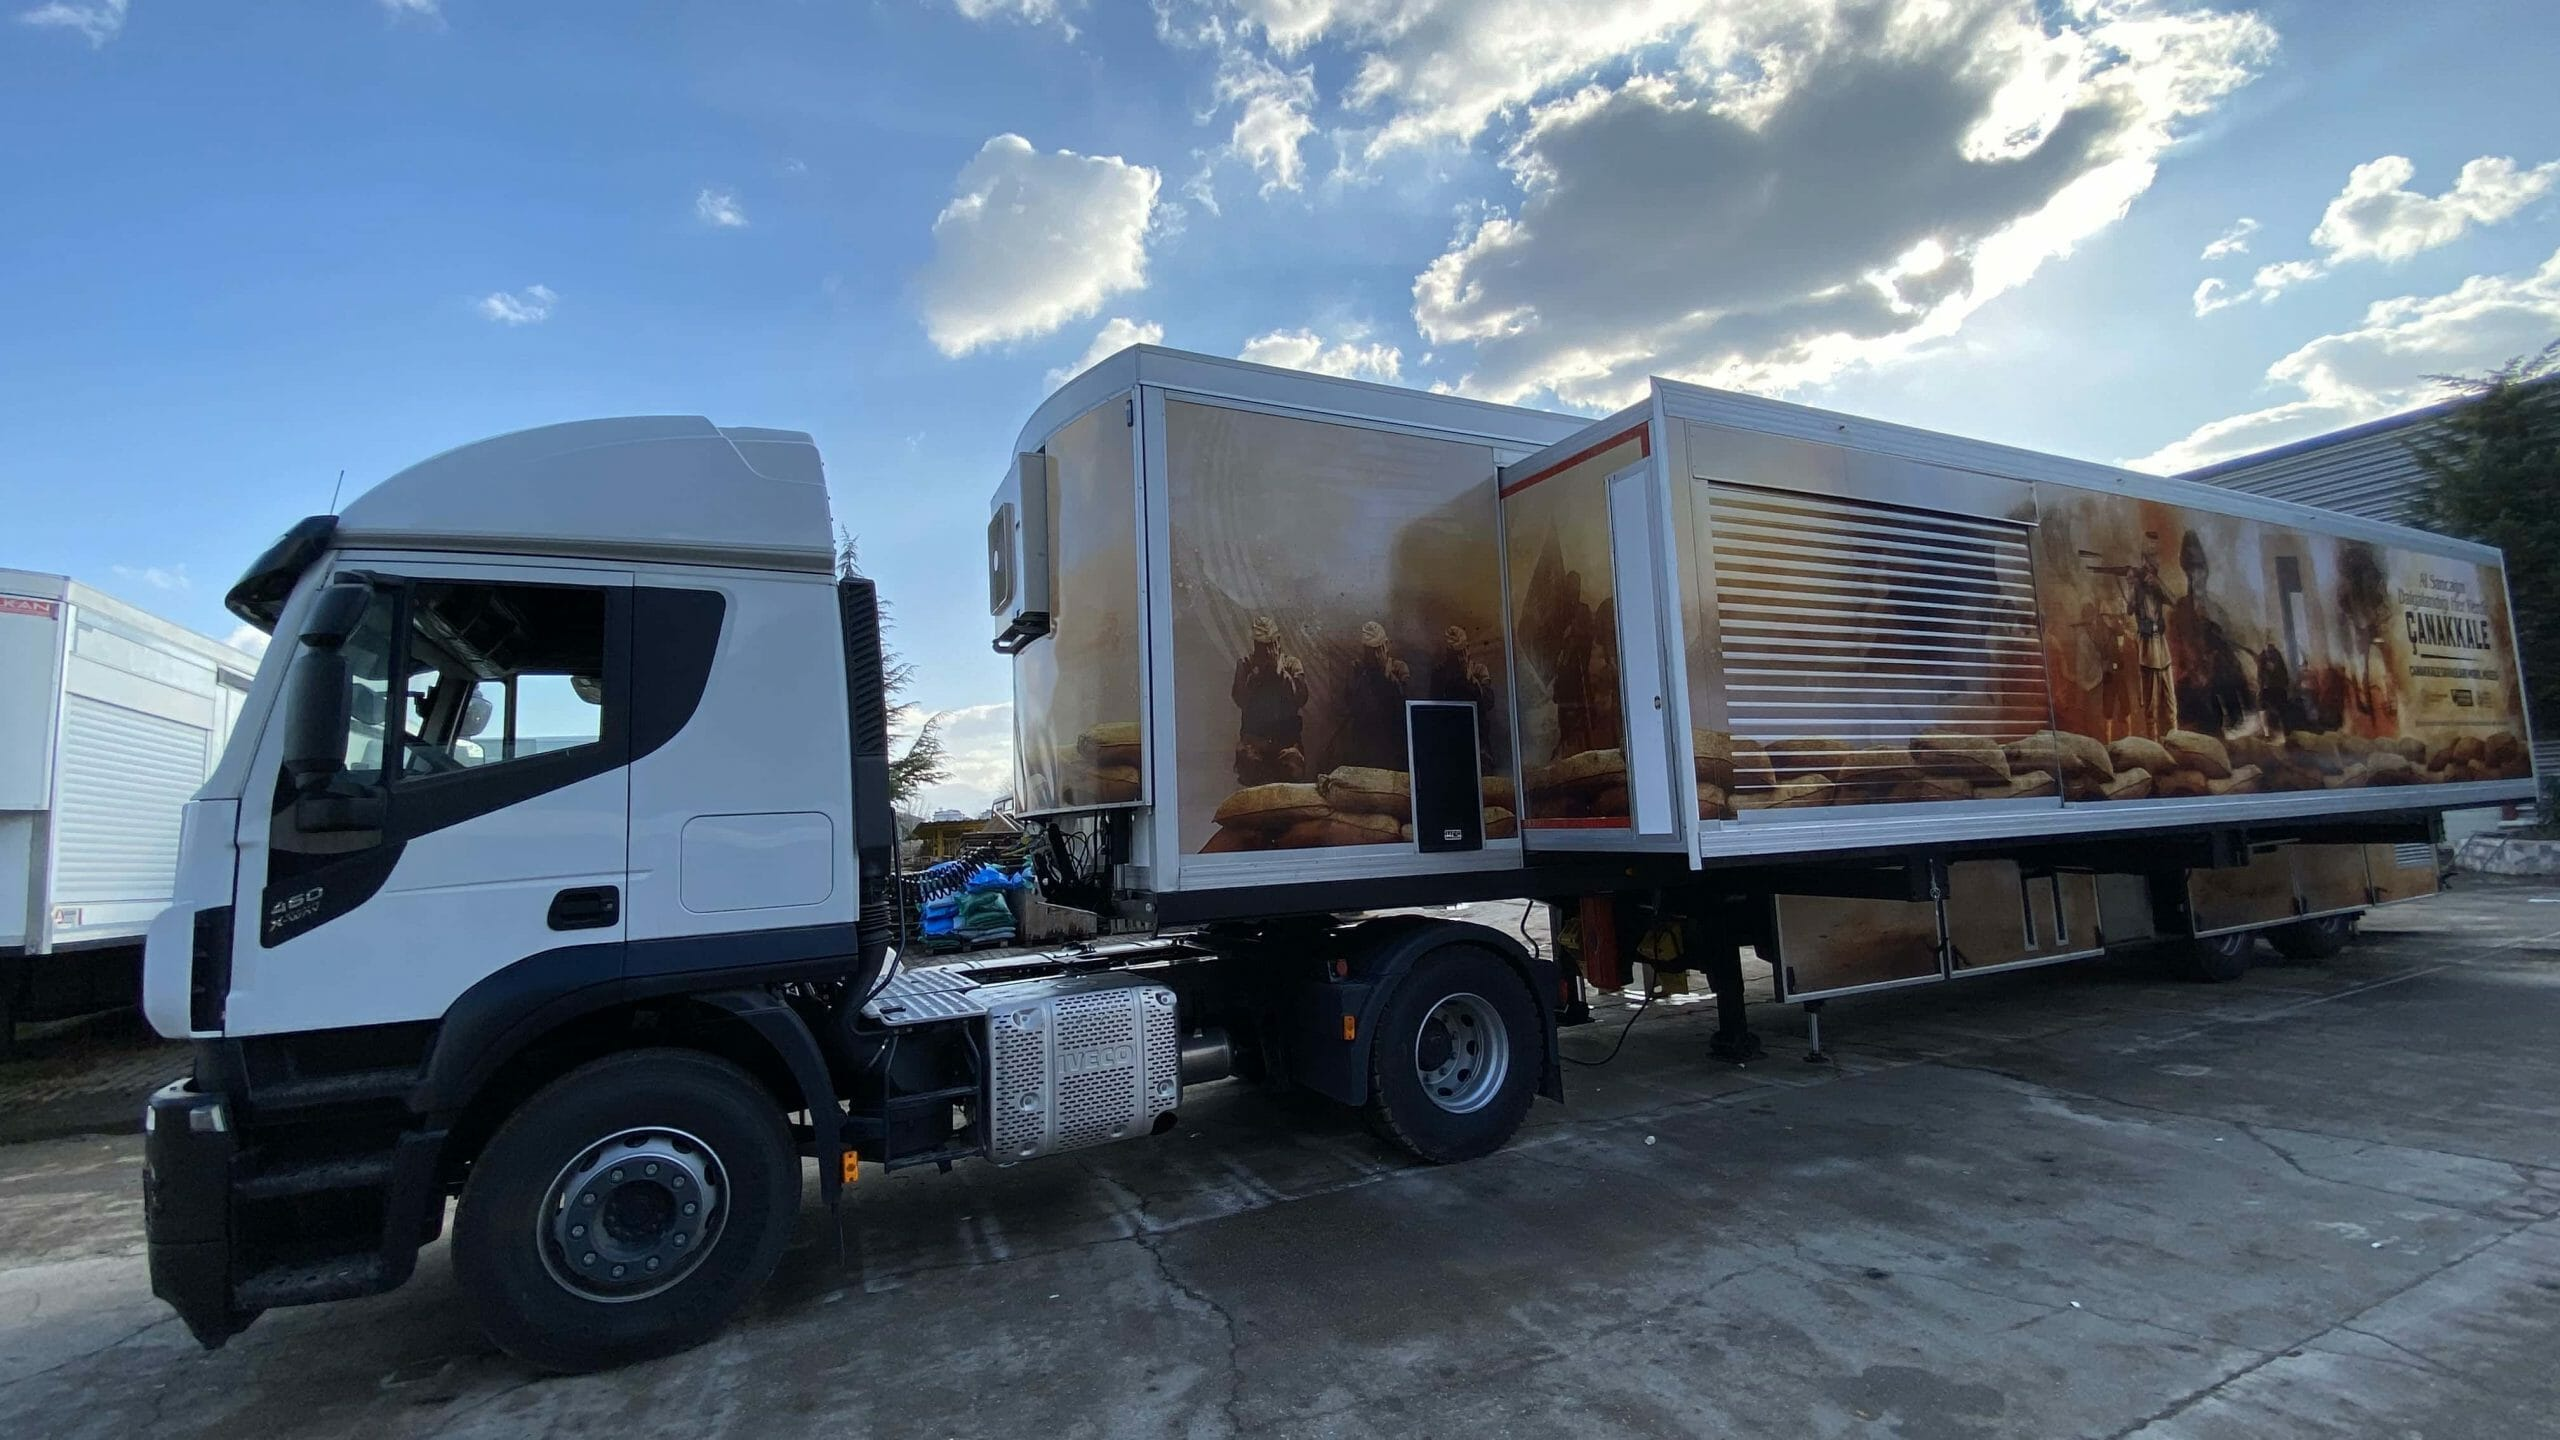 mobile-museum-vehicle-trailer-scaled.jpg